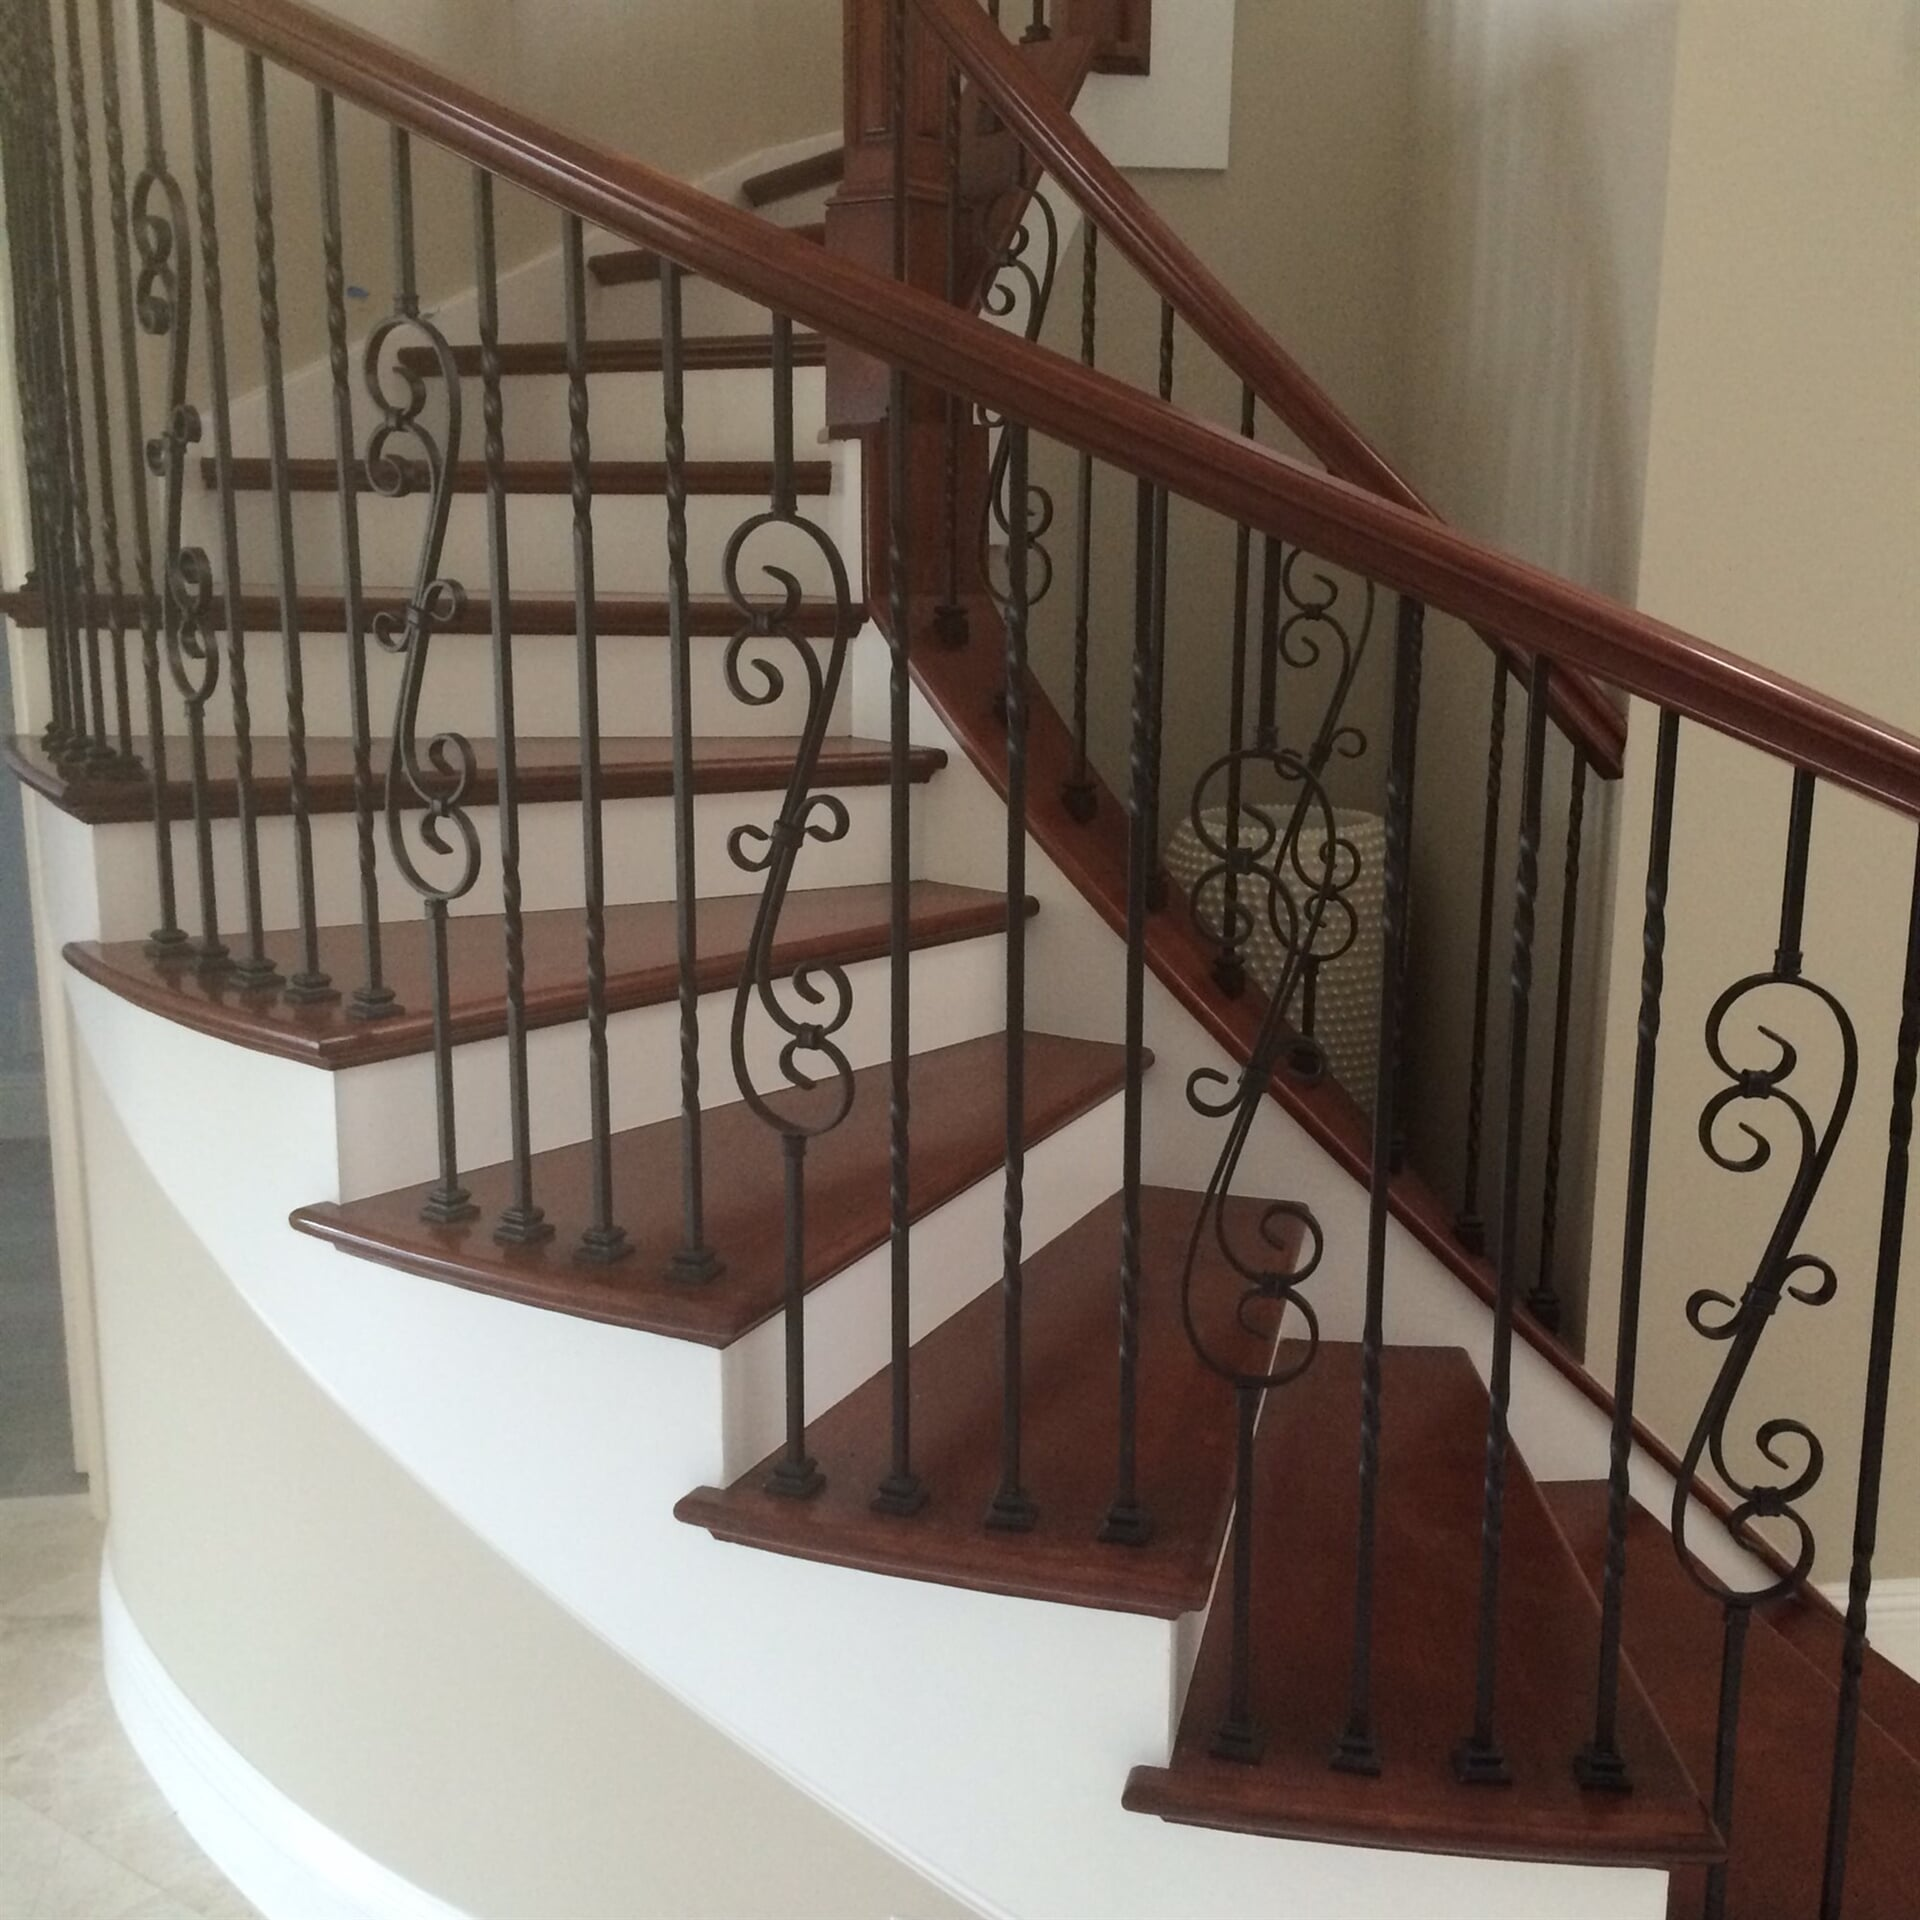 Wood stairs in West Palm Beach, FL from Floors For You Kitchen & Bath